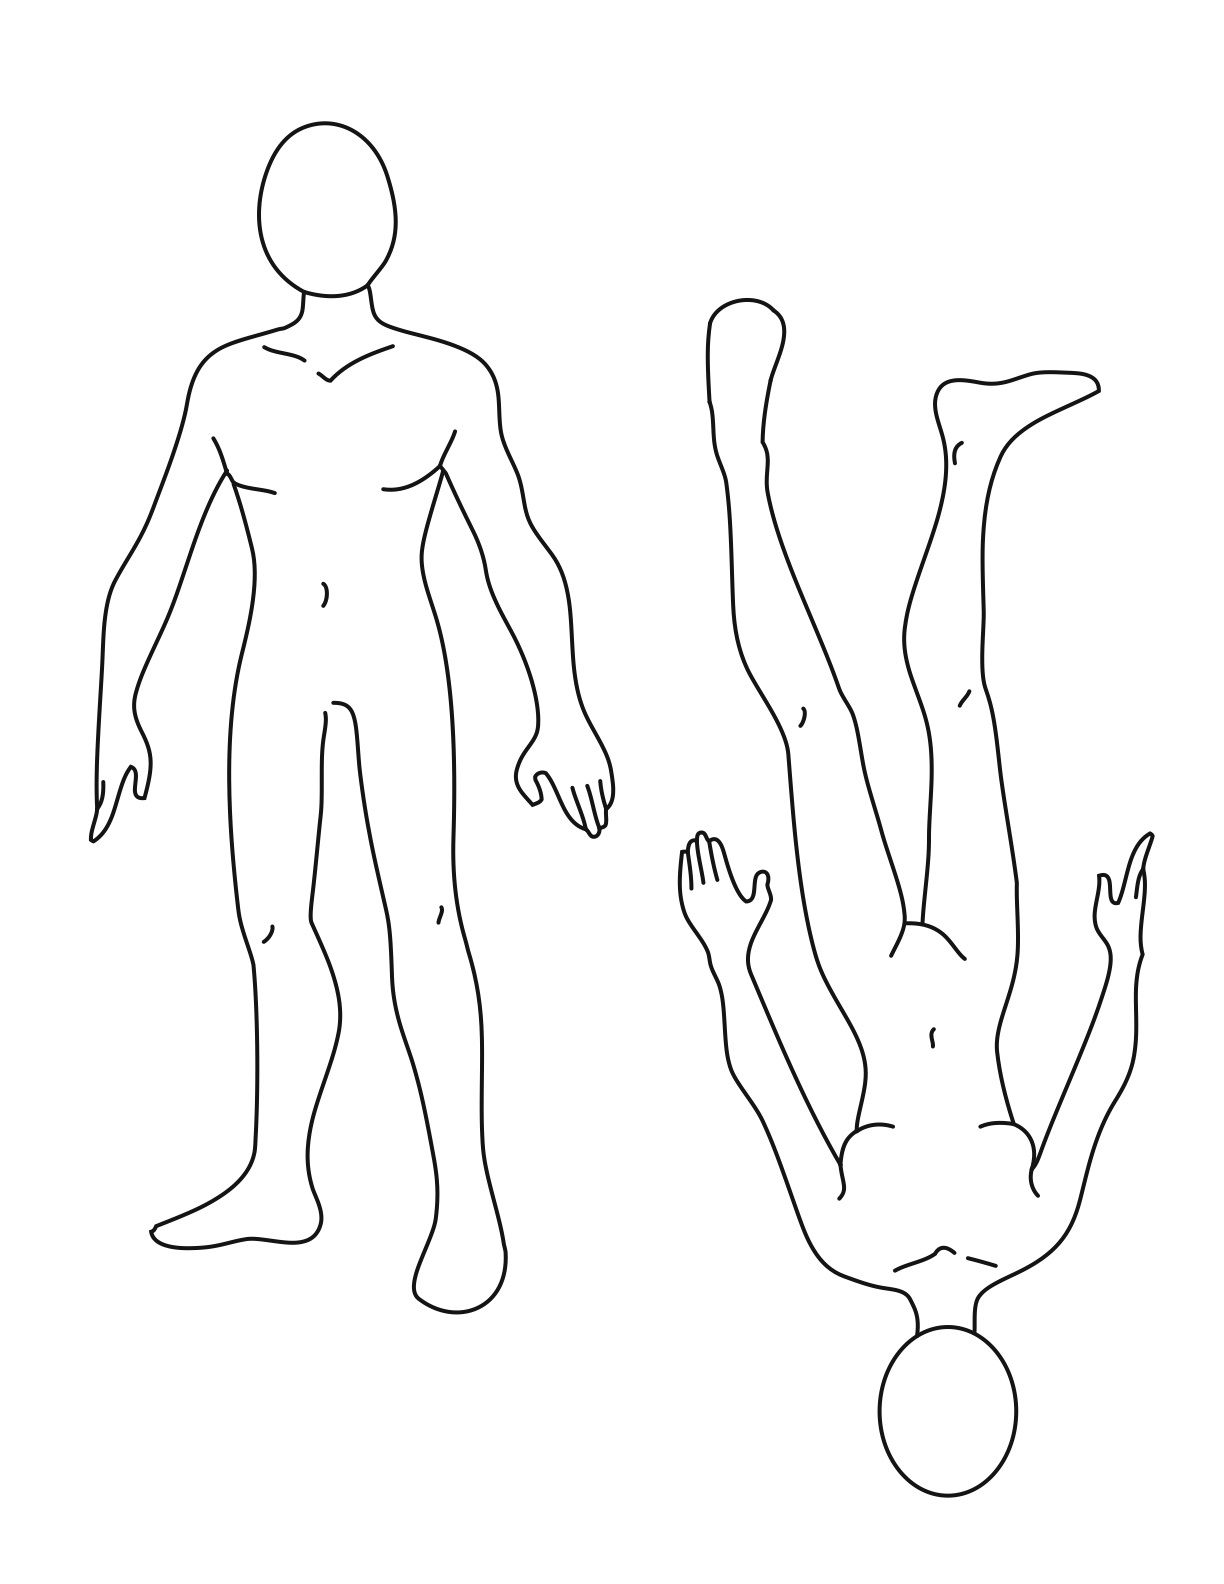 Pix For Gt Cartoon Female Body Outline